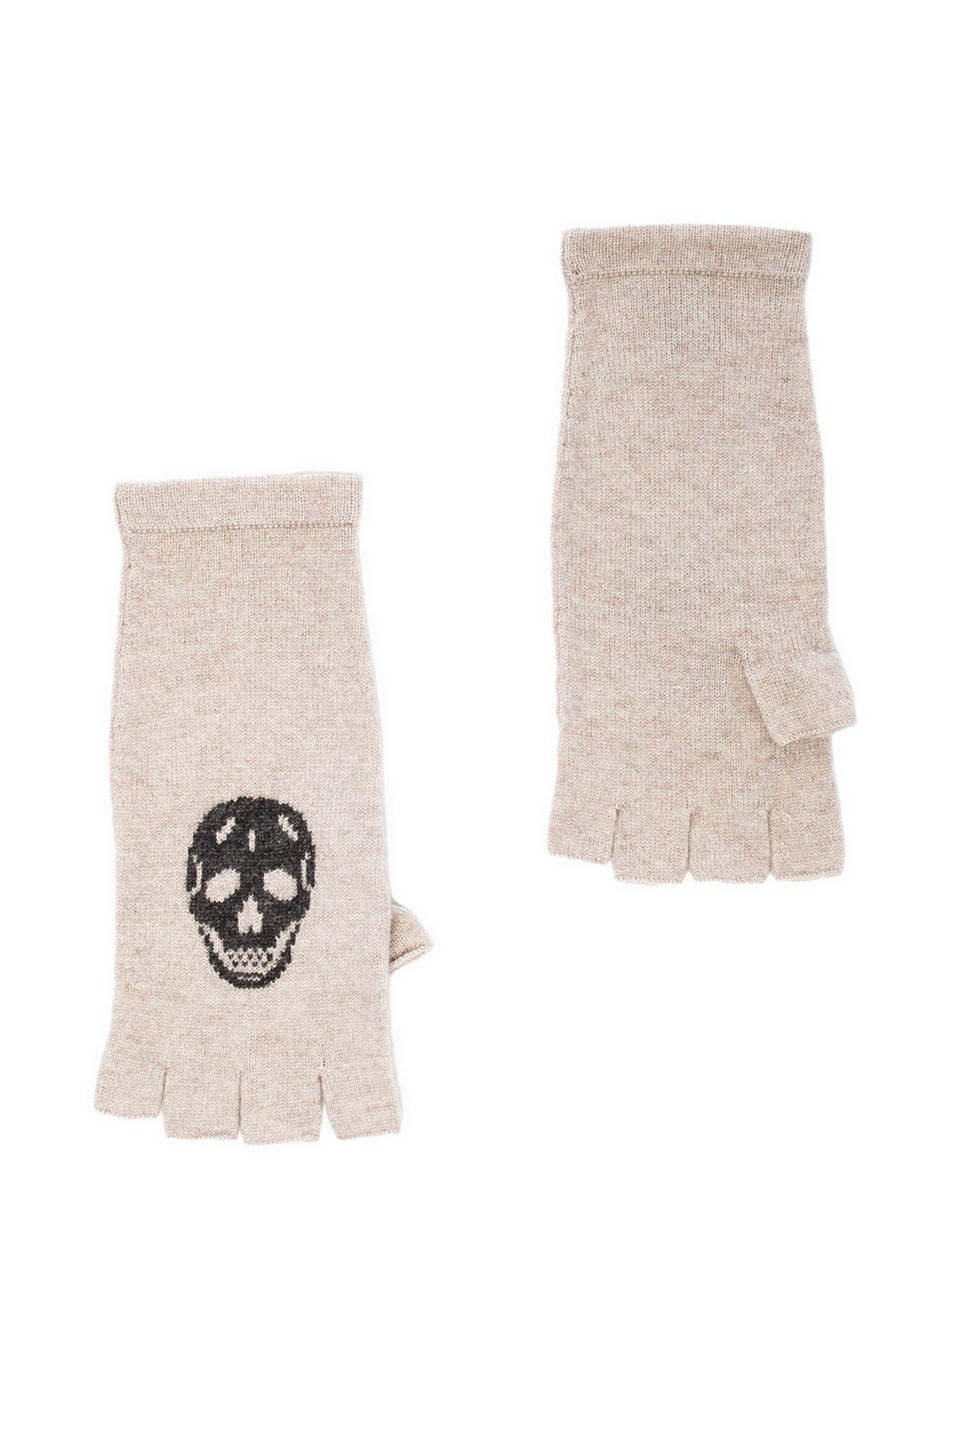 360 Sweater Skull Cashmere REVOLVE Exclusive Skull Glove in Bone & Smog